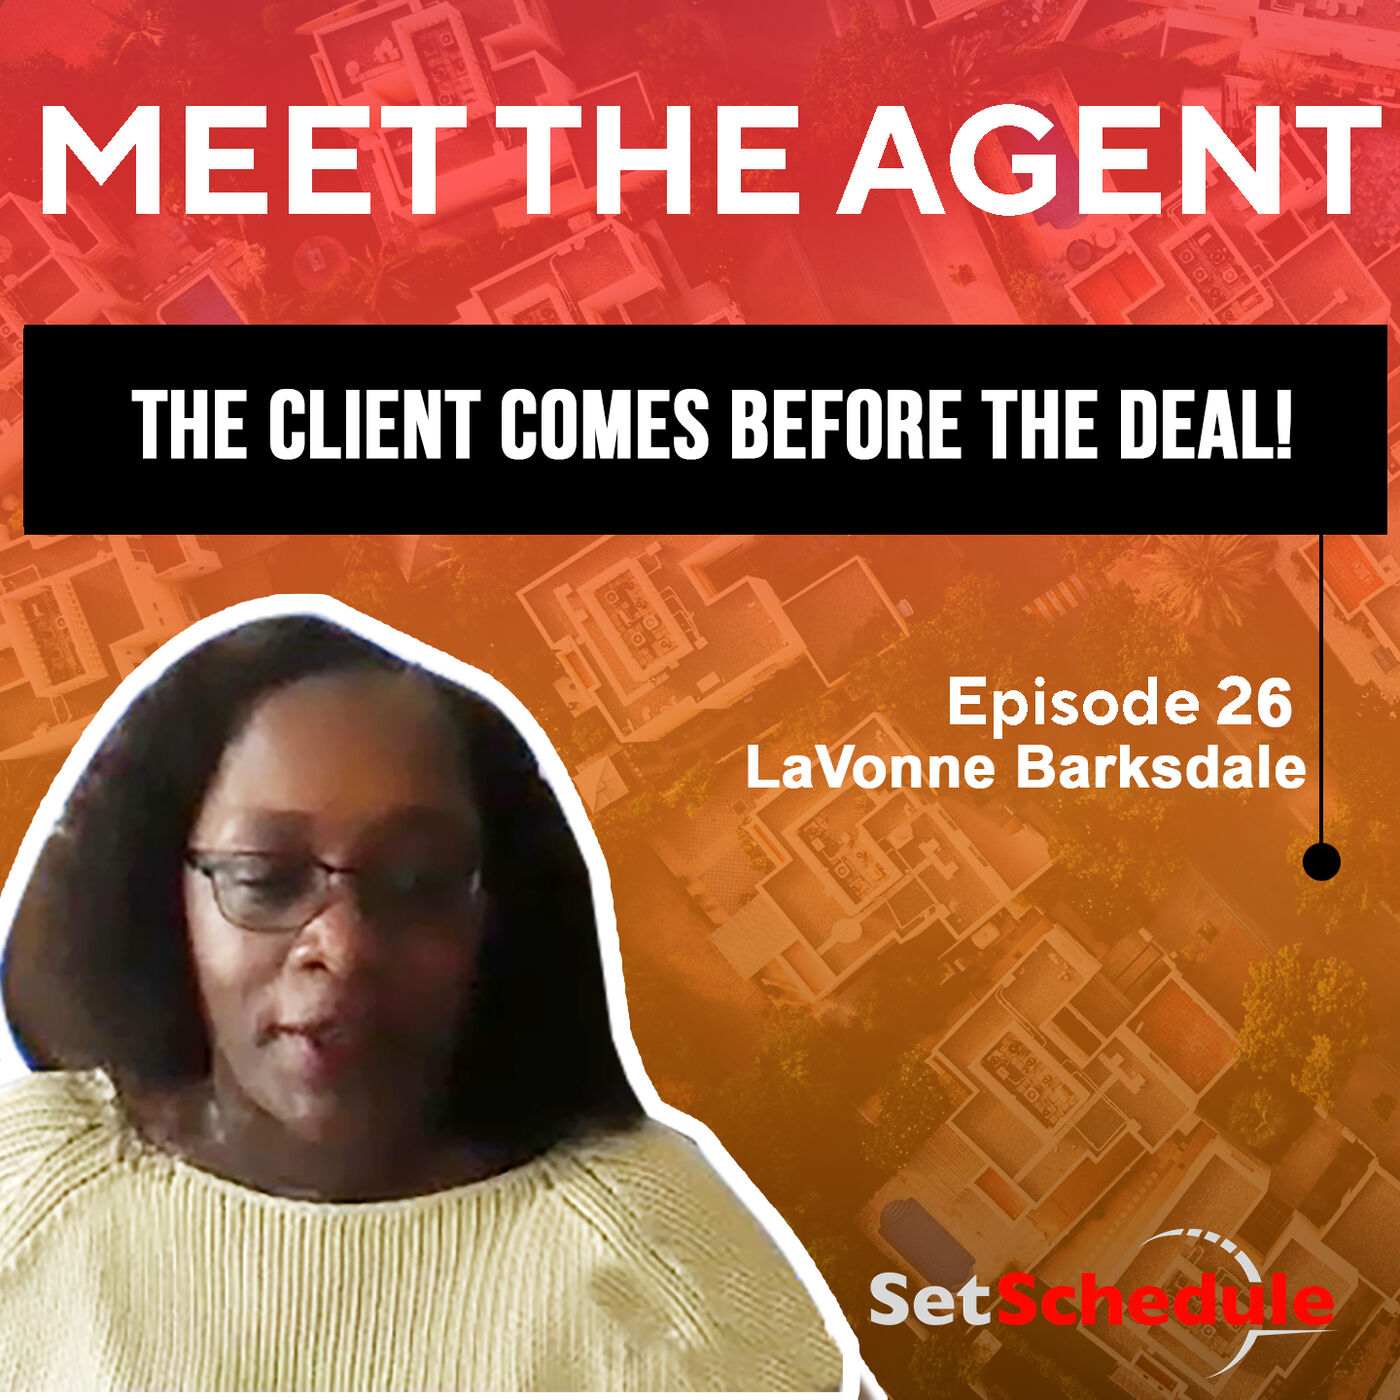 The Client Comes Before the Deal! - LaVonne Barksdale